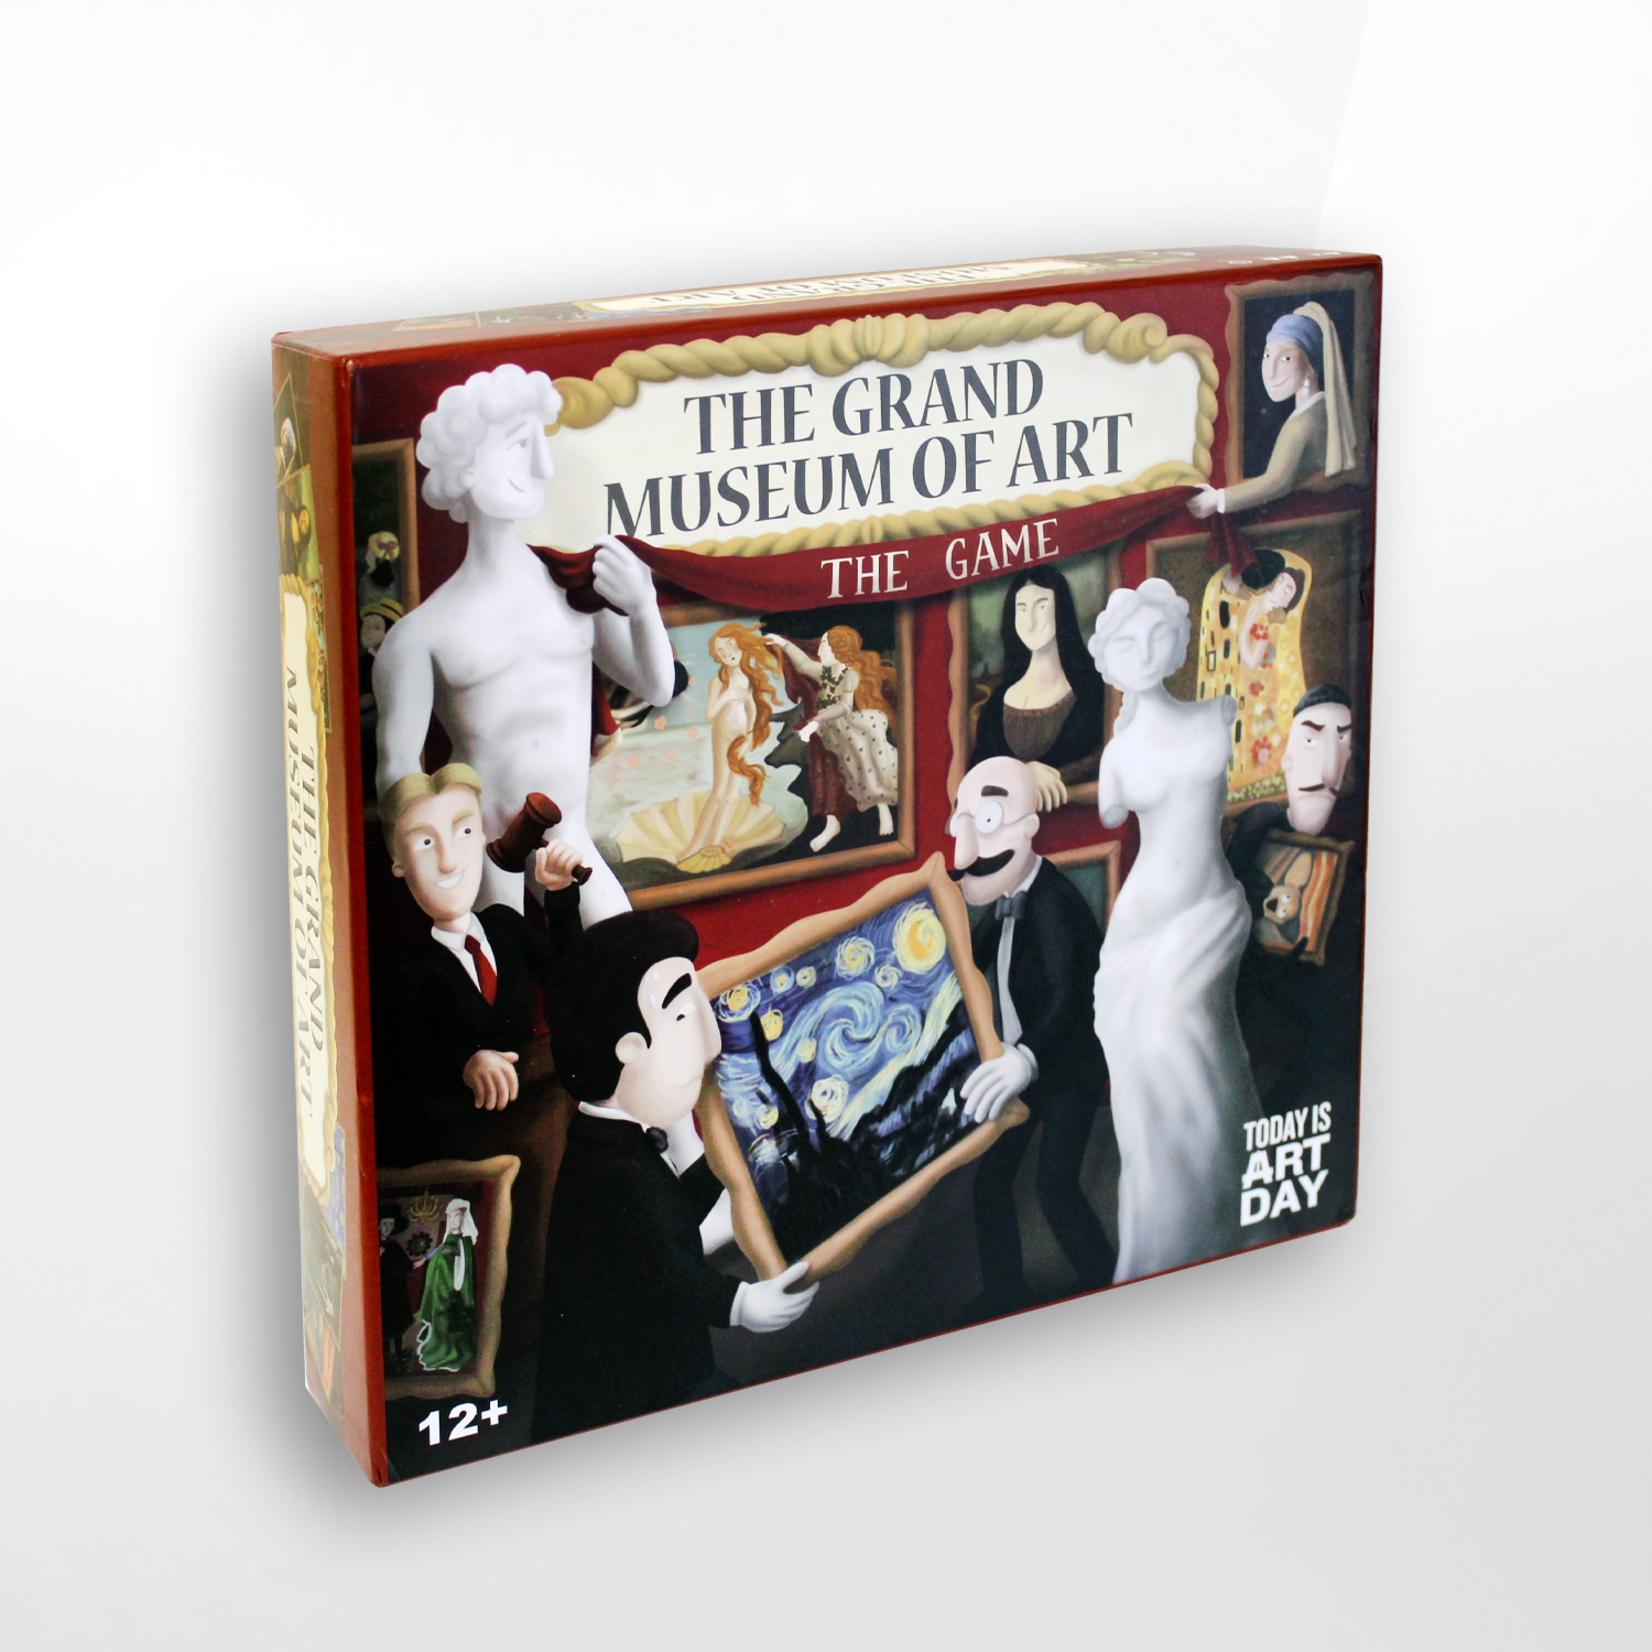 Today is Art Day The Grand Museum of Art: The Game